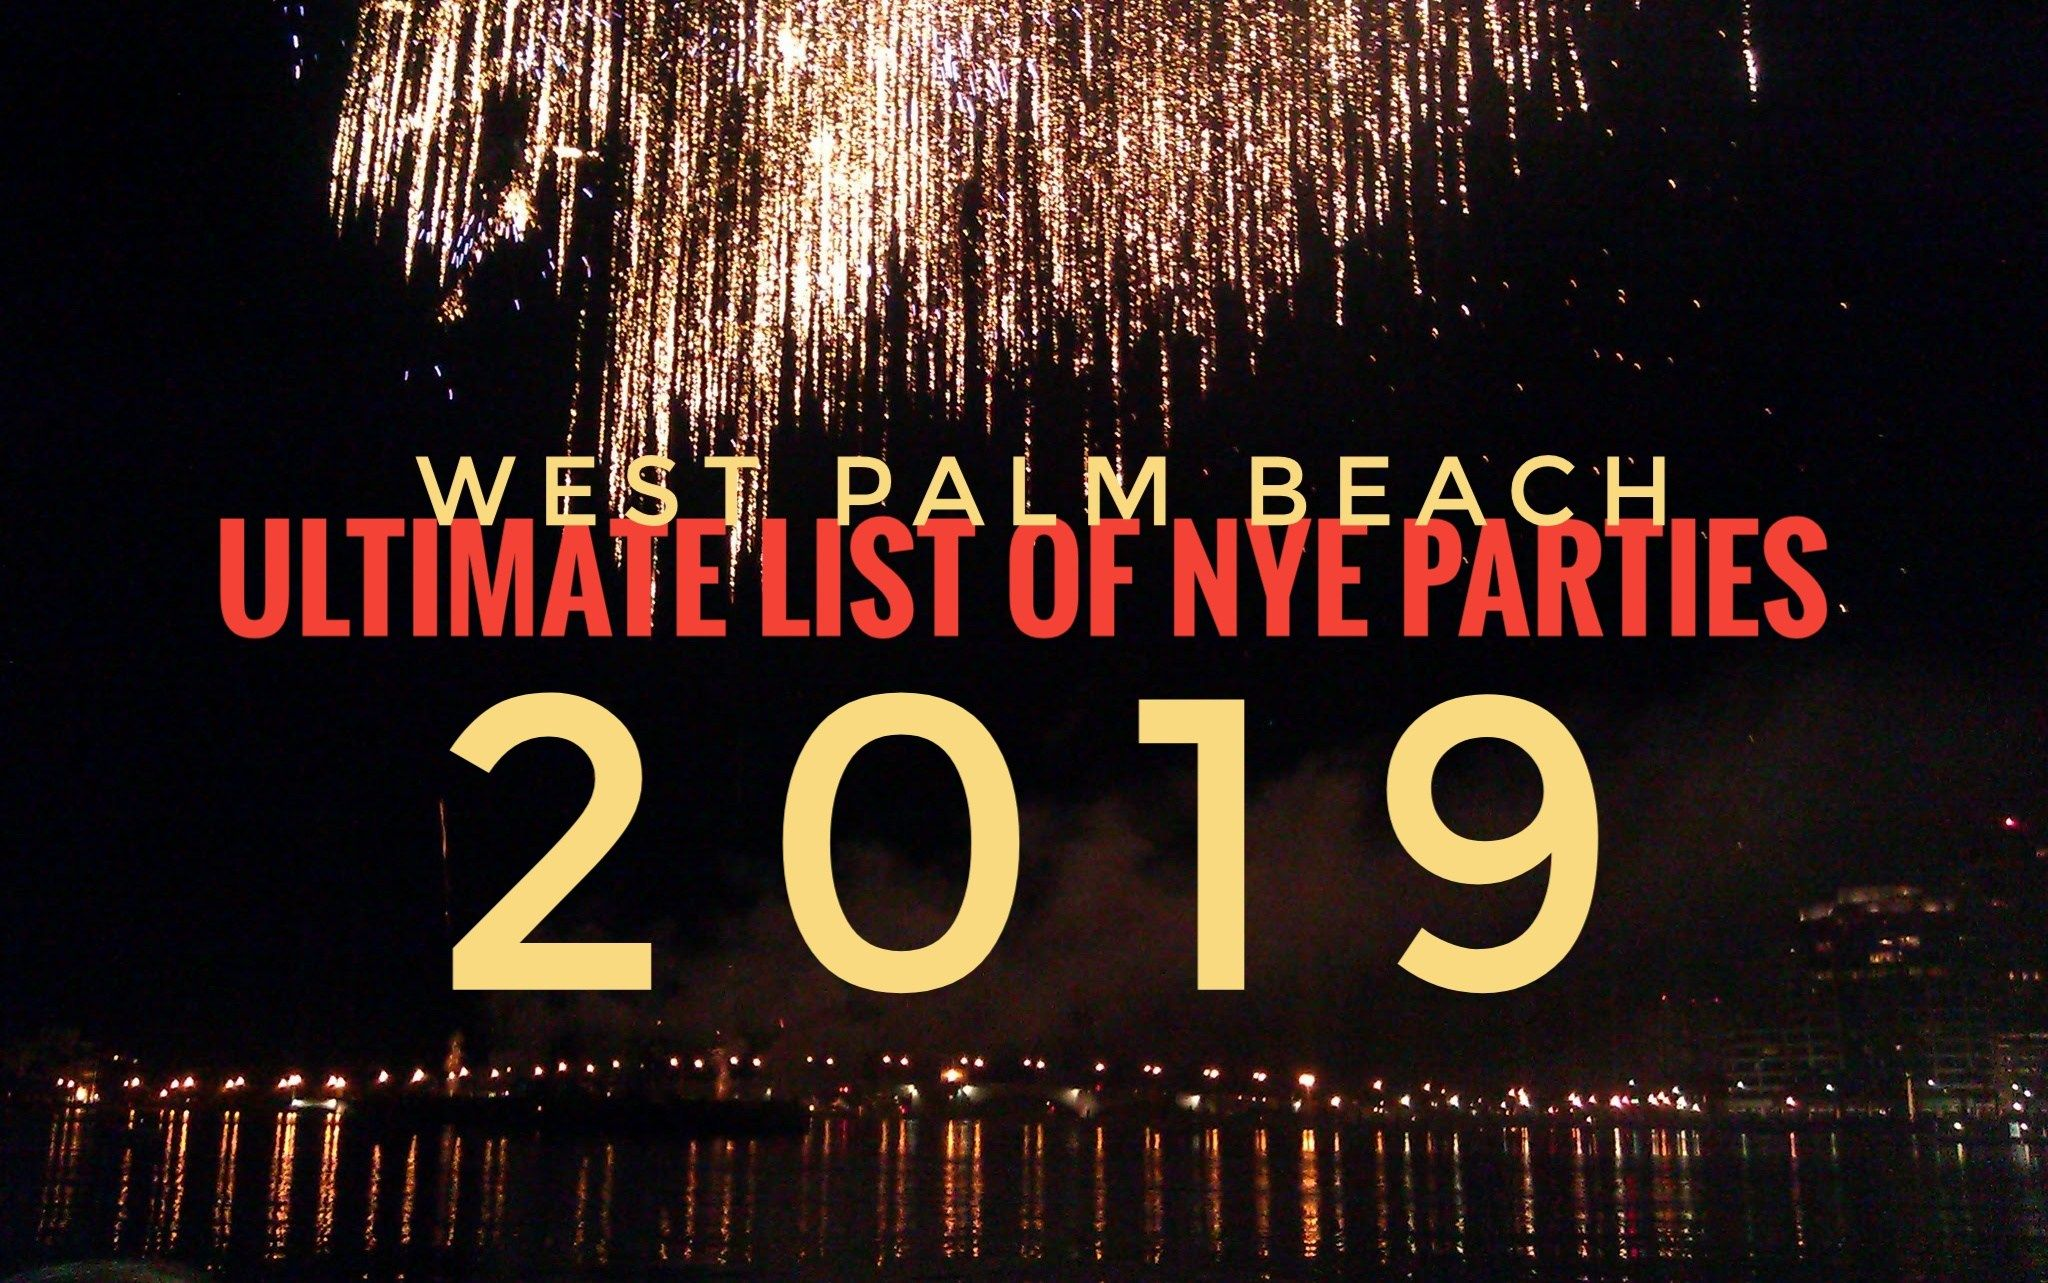 New Year's Eve 2019 Parties in West Palm Beach New year